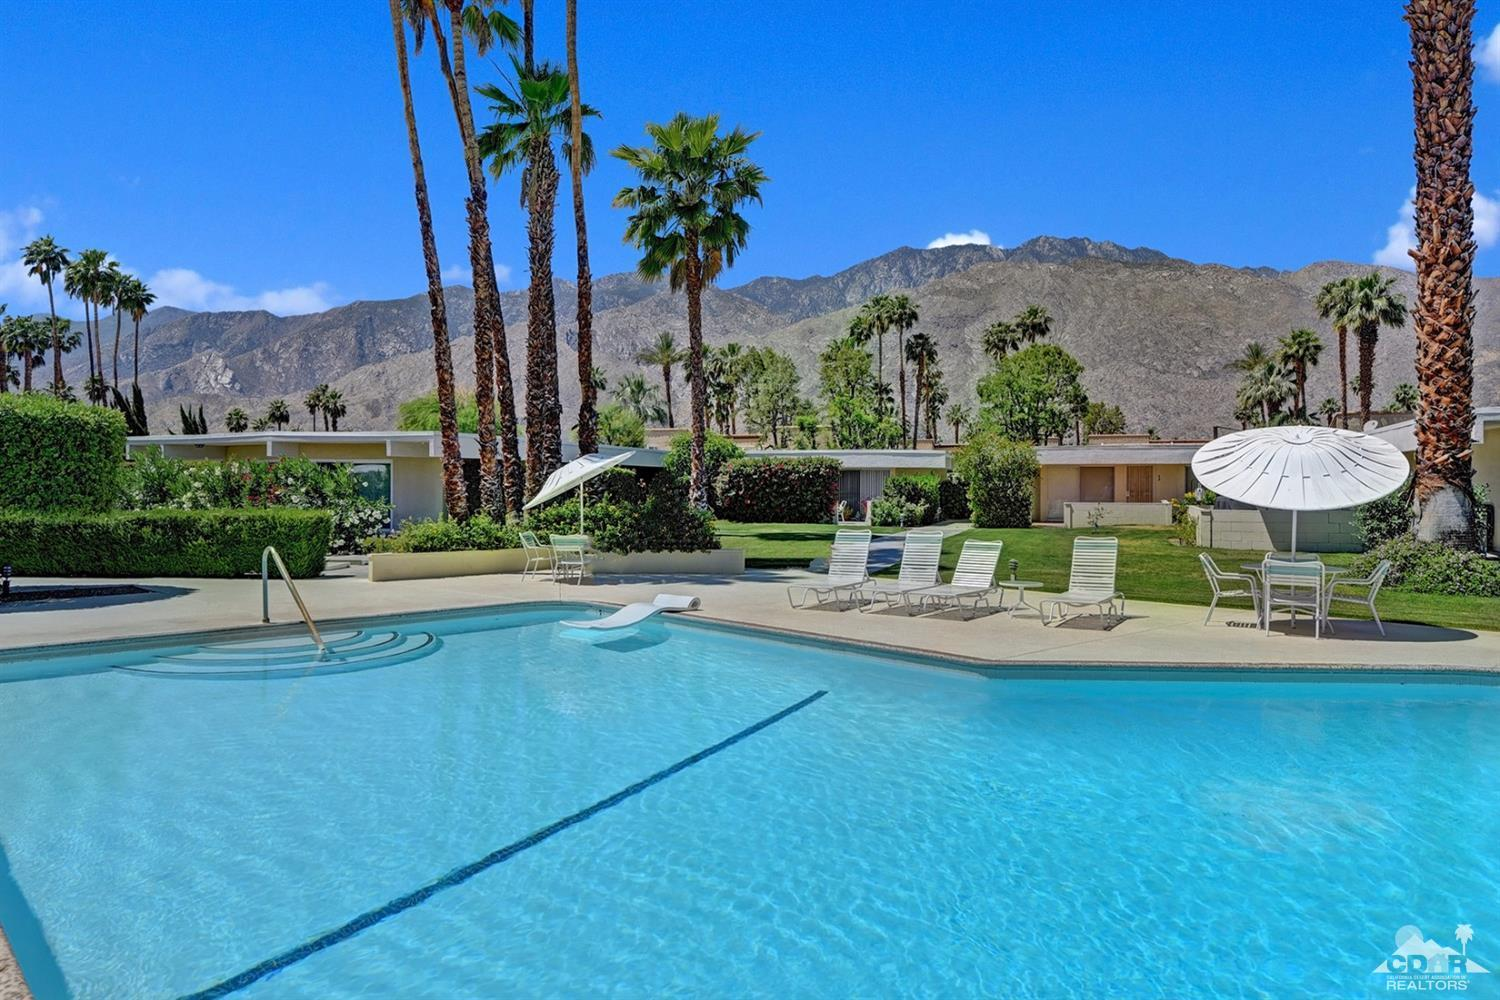 Villa riviera condo community in palm springs condos for Palm springs for sale by owner